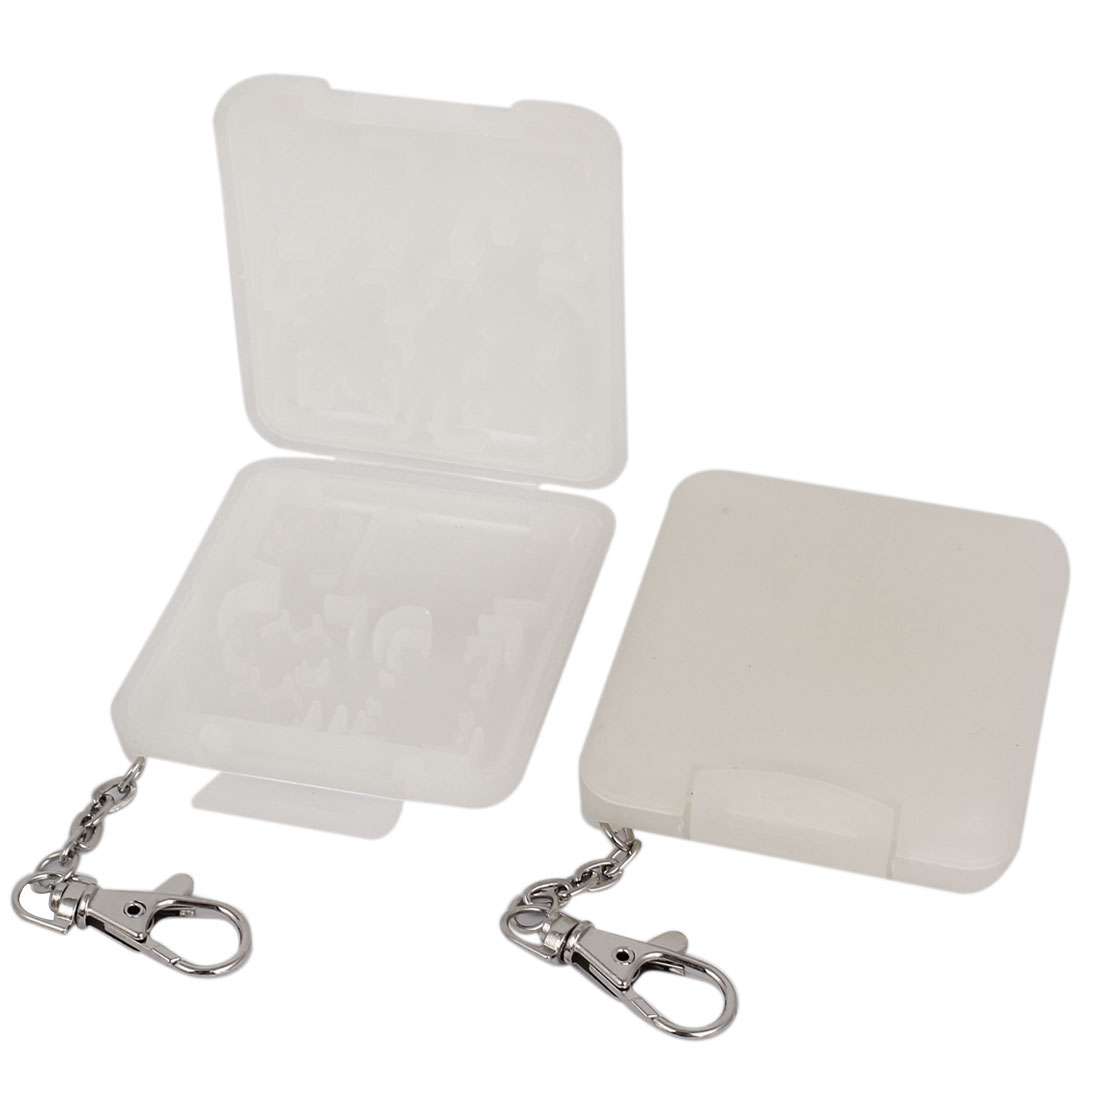 Light Gray Memory Card Storage Case Holder 18 Capacity 2Pcs with Key Chain